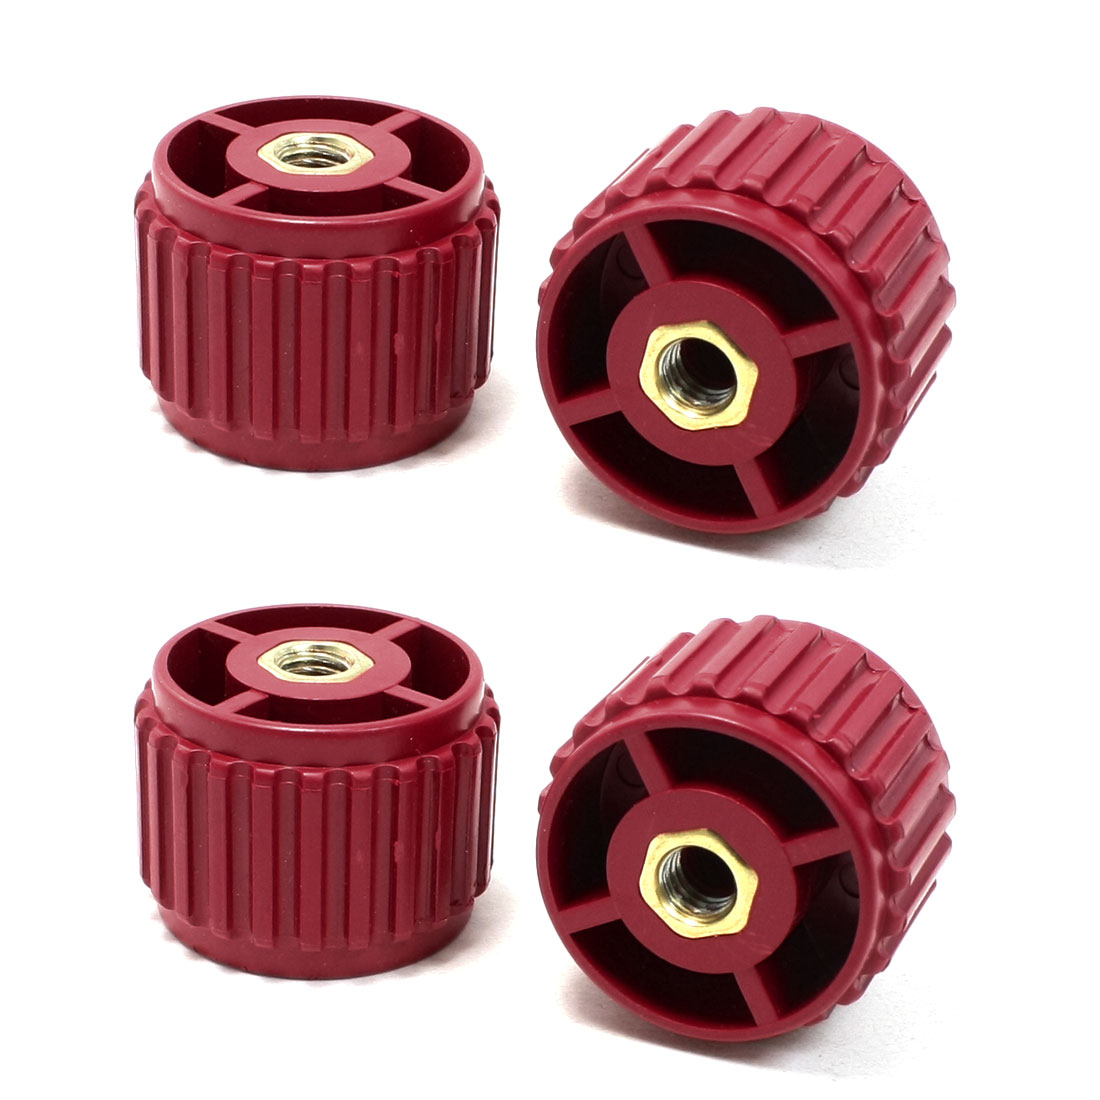 4 Pcs 8mm Bore 30mm High Dark Red Enhanced Insulator GCS30*40 for Bus Bar